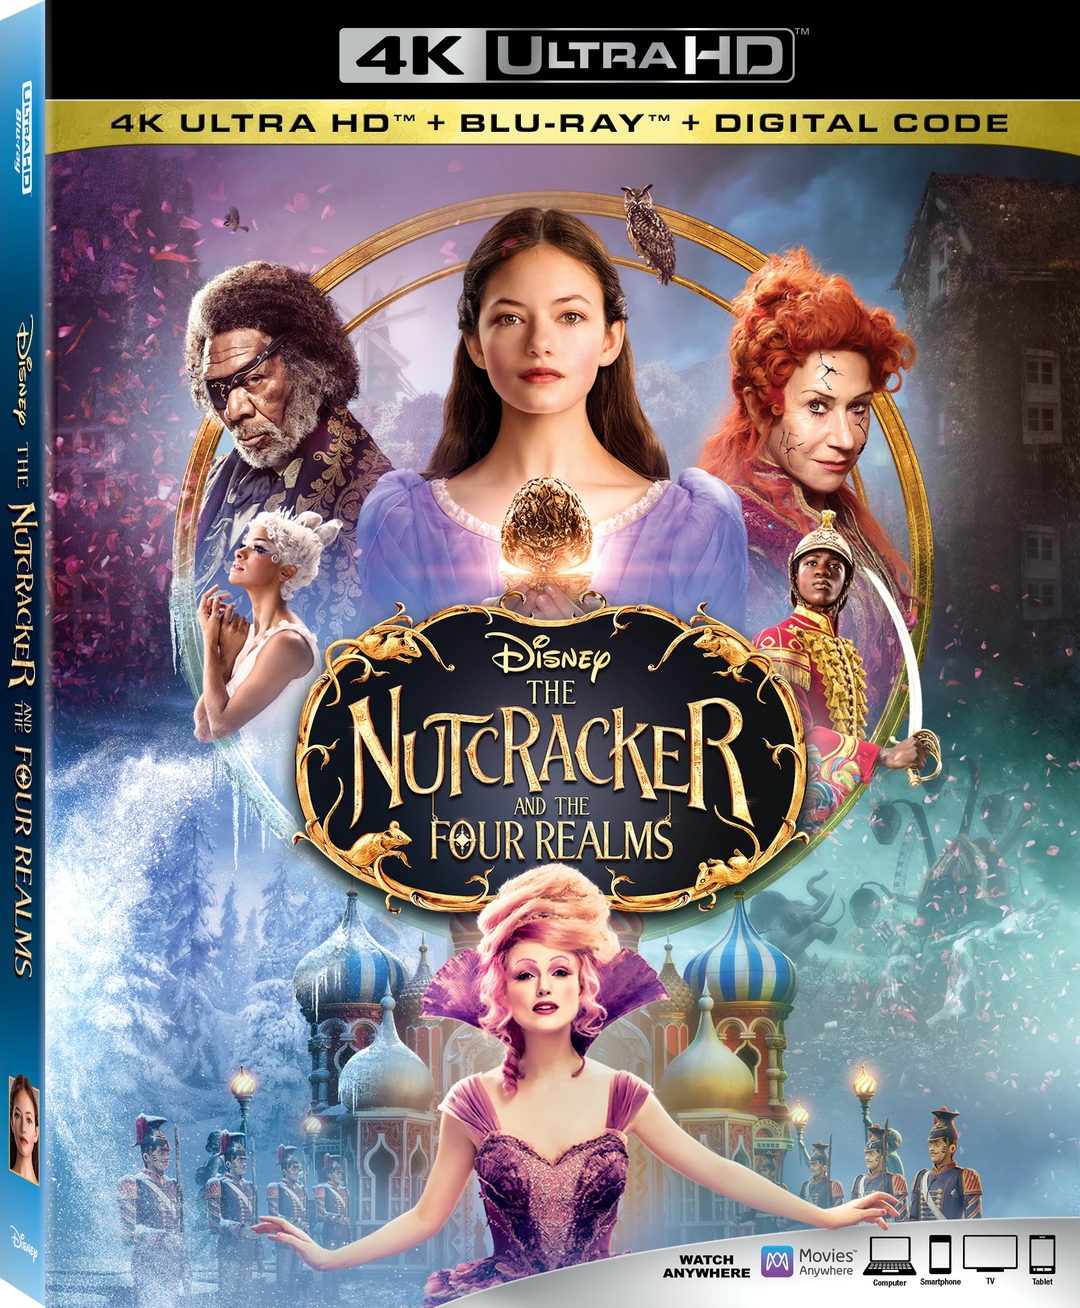 The Nutcracker and Four Realms #DisneysNutcracker #Nutcracker #movie #giveaway #ad